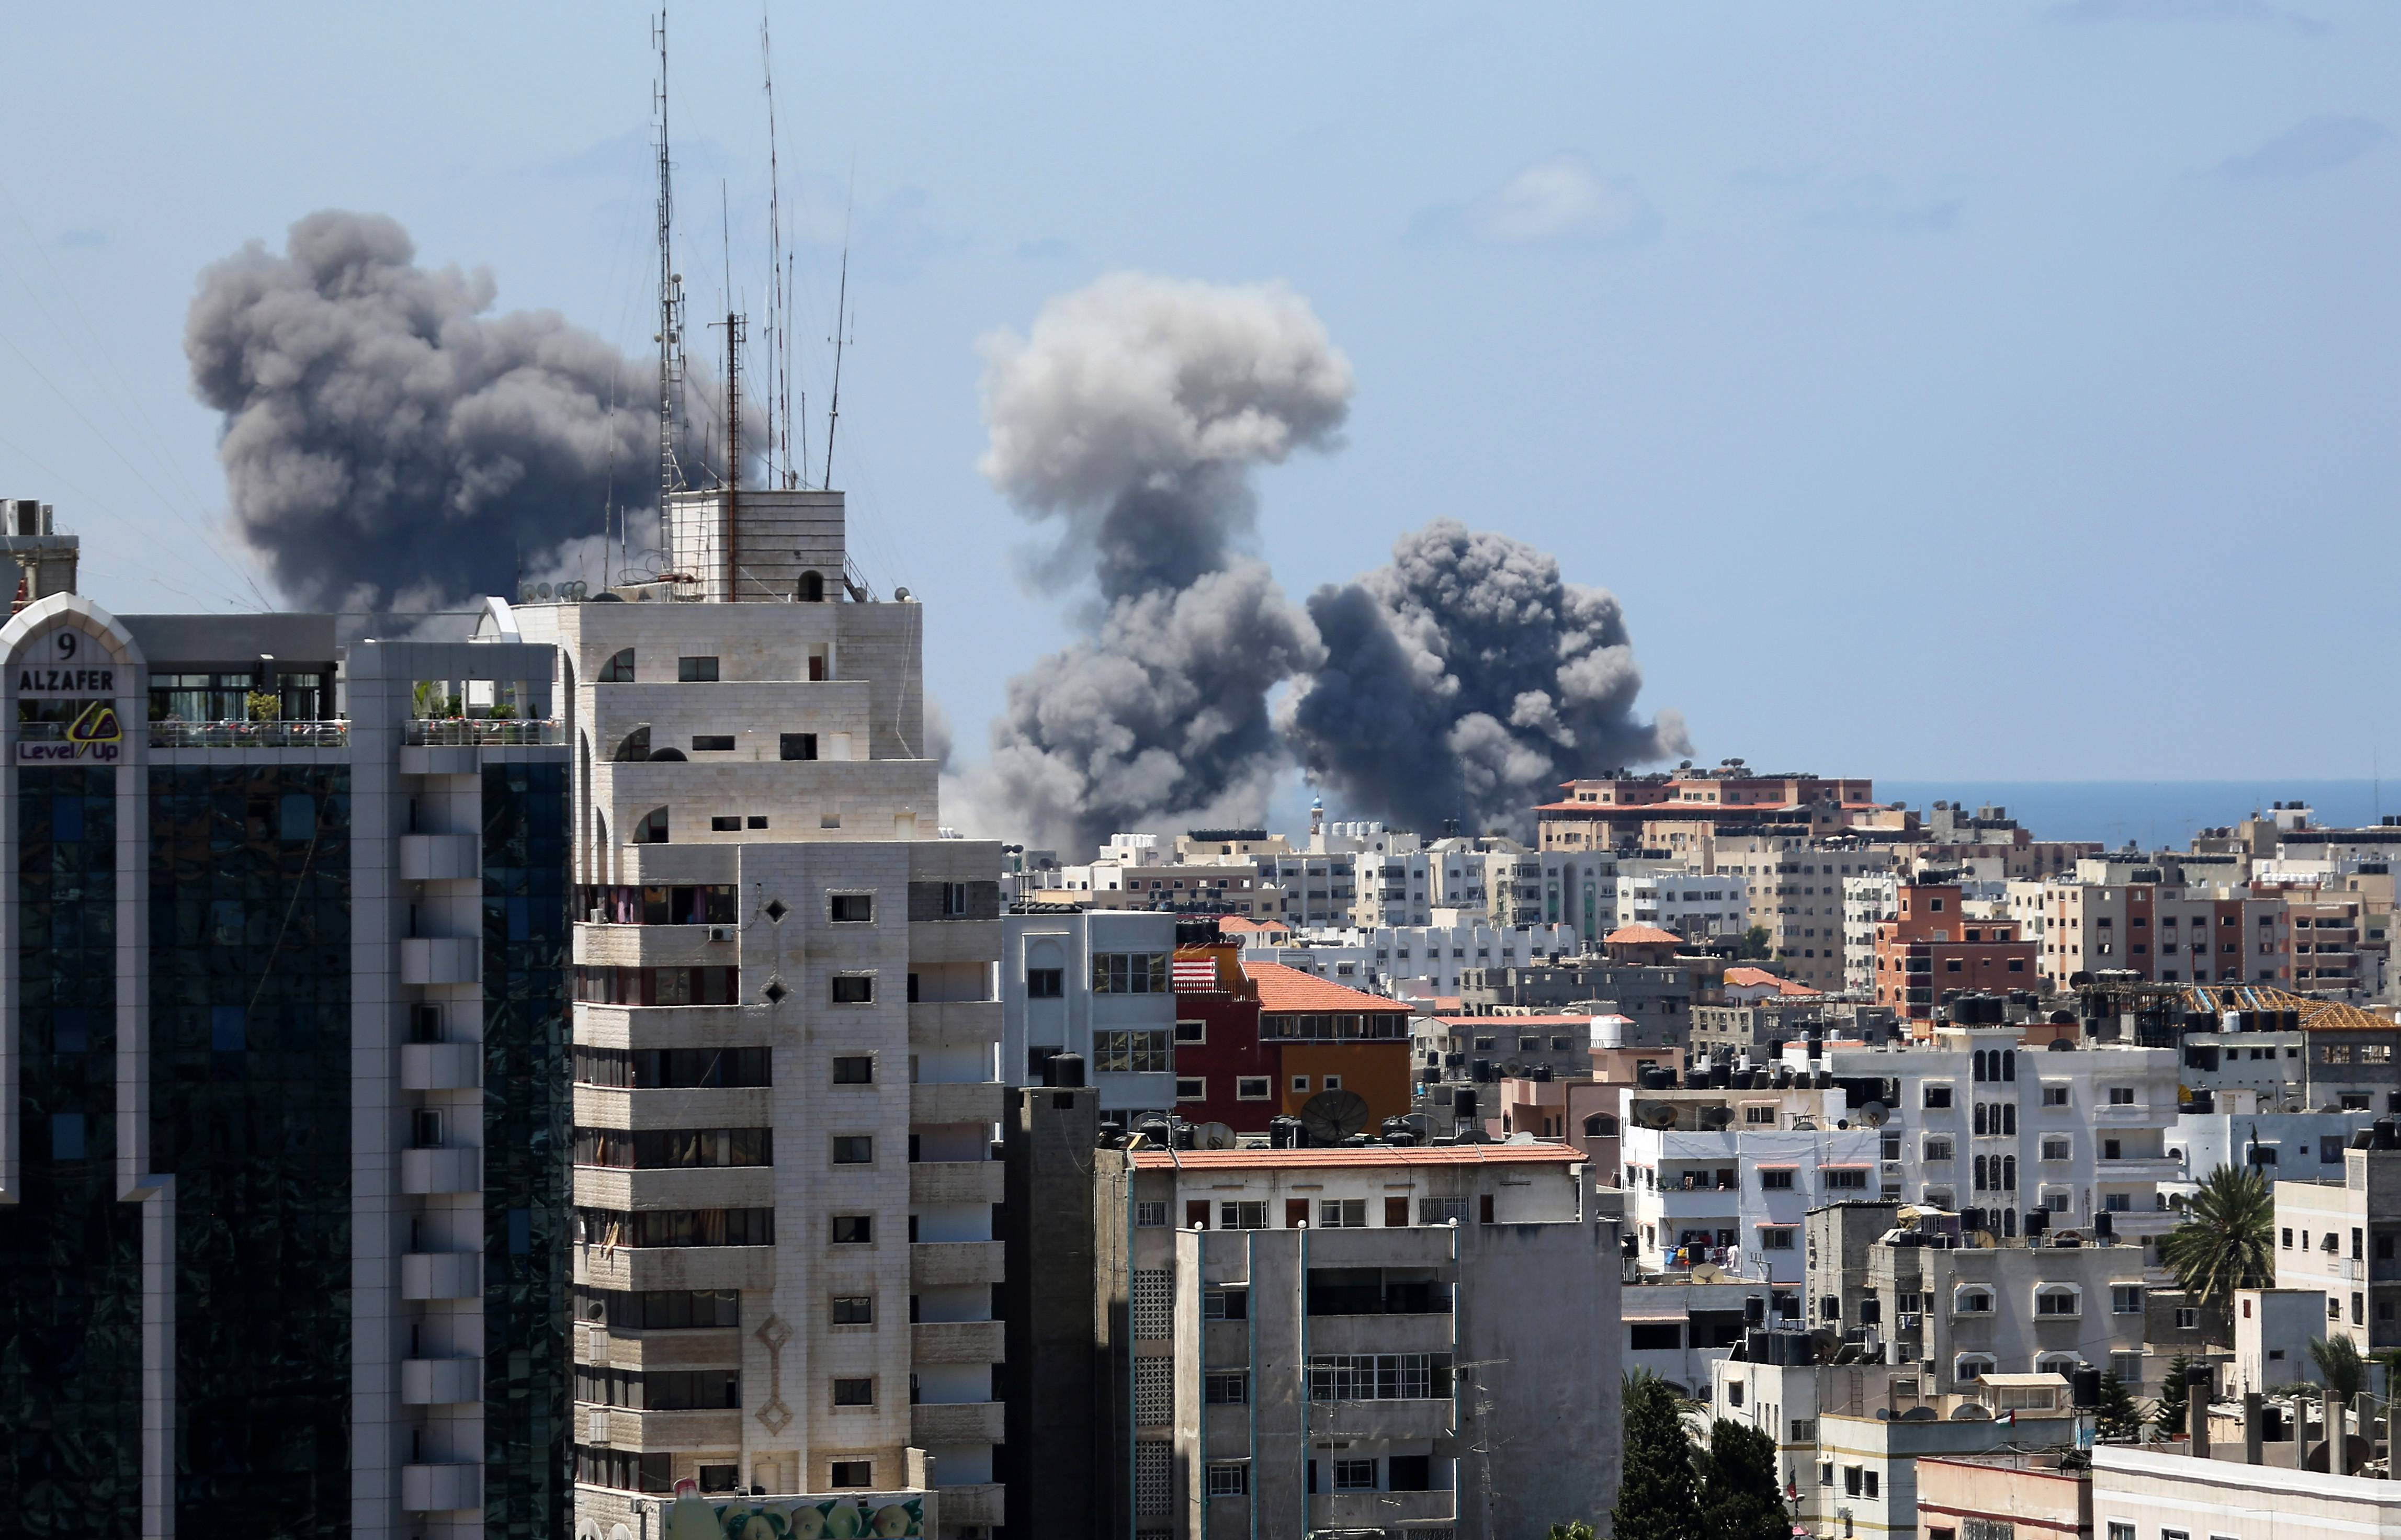 Smoke rises Friday after an Israeli missile strike in Gaza City. Israel intensified its 11-day campaign against Hamas by sending in tanks and troops late Thursday after becoming increasingly exasperated with unrelenting rocket fire from Gaza on its cities.